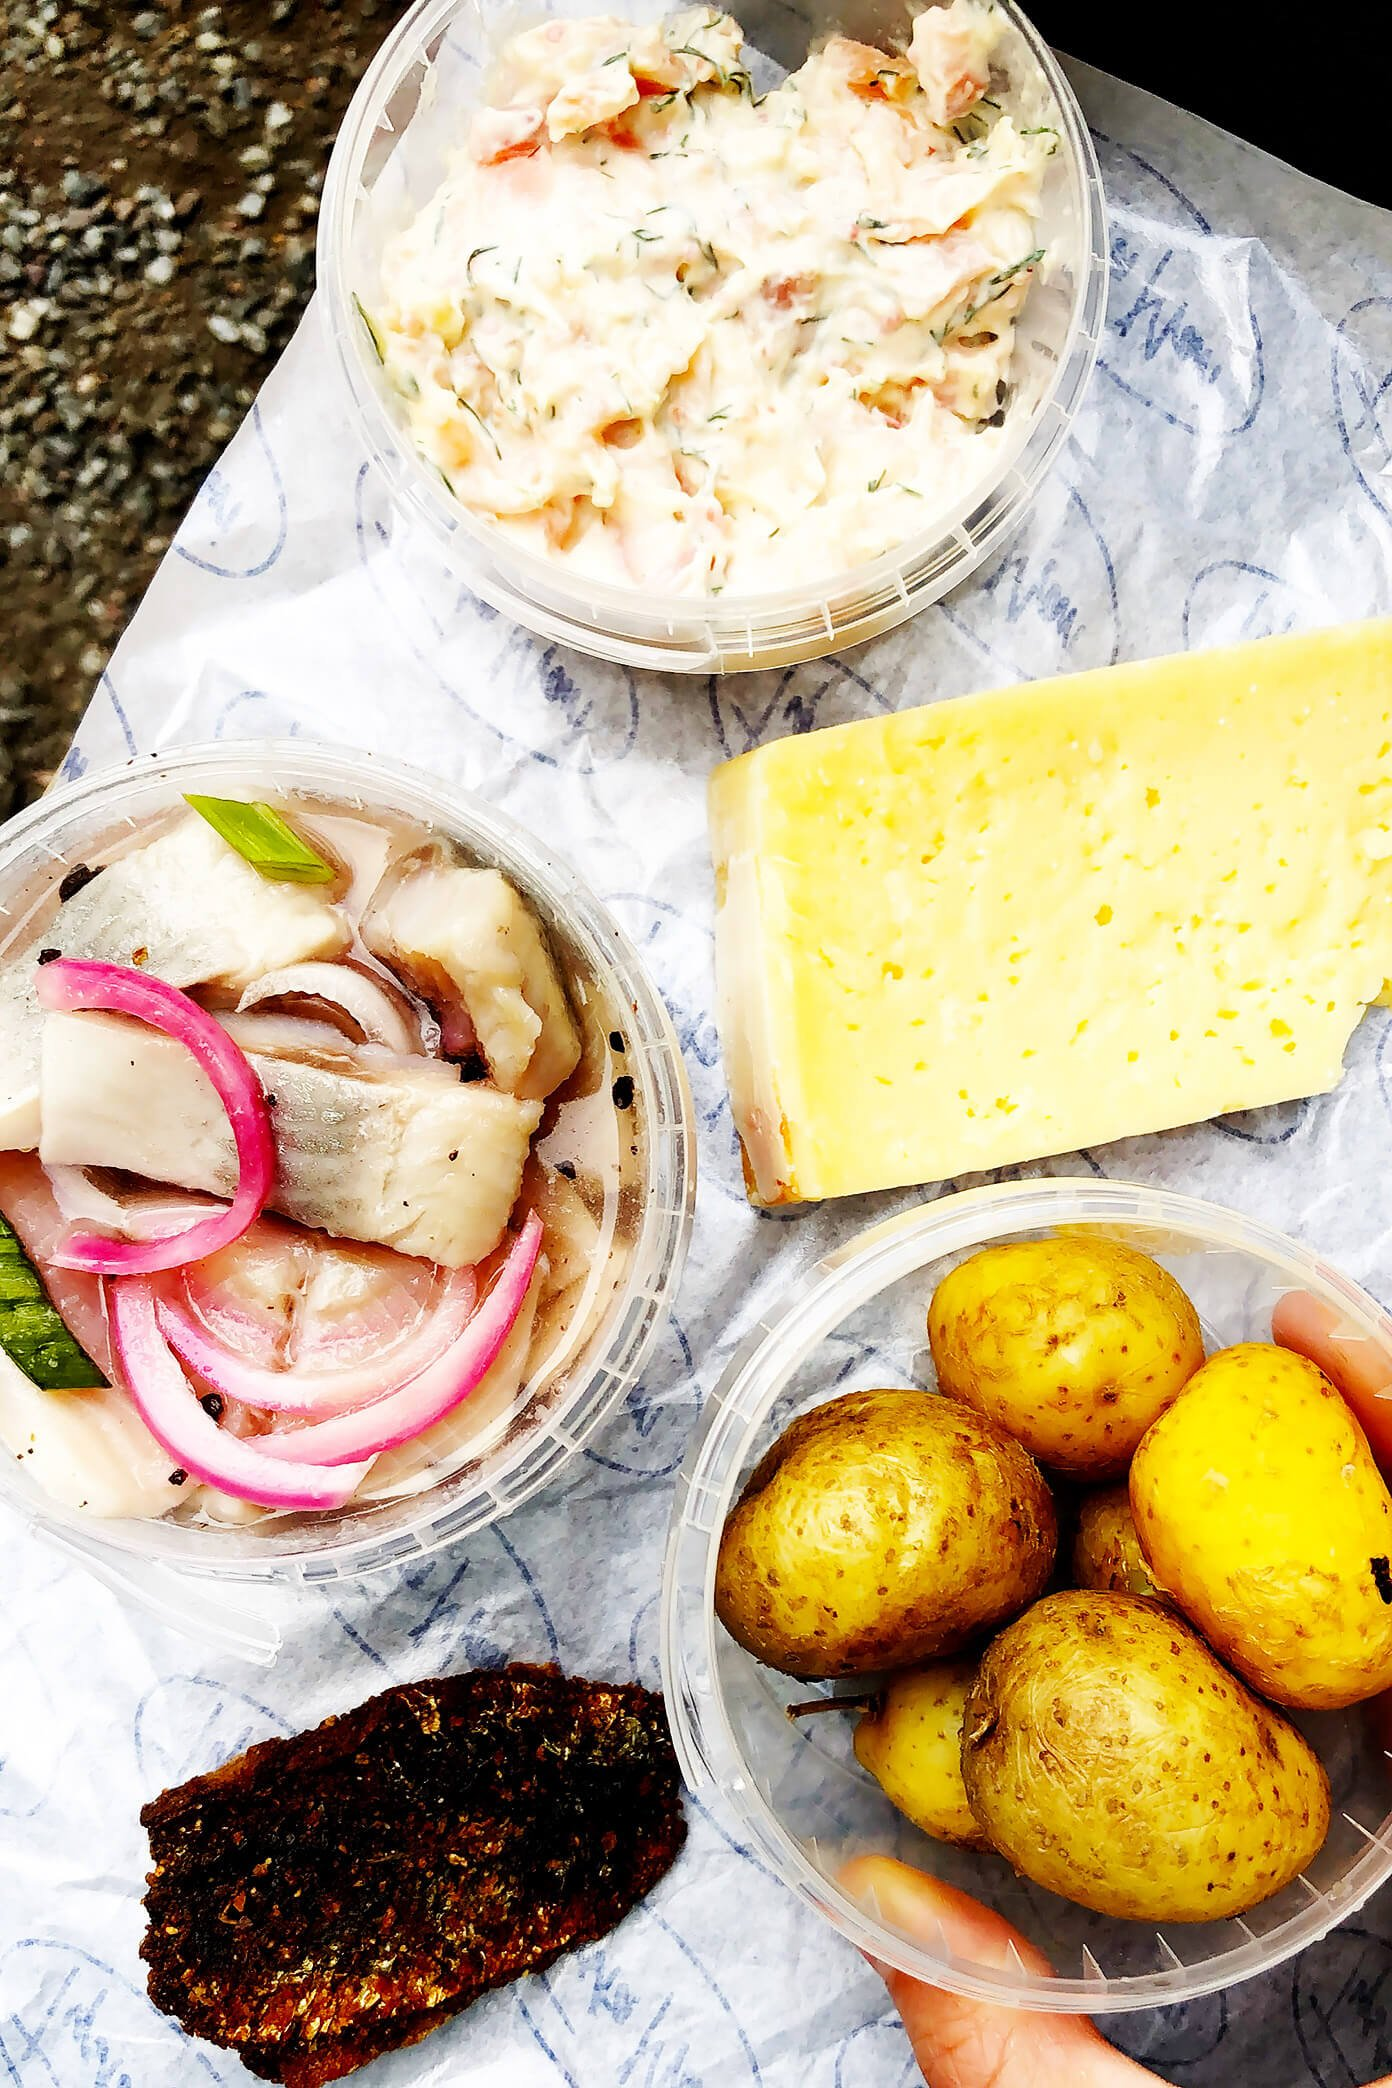 Pickled Herring, Smoked Salmon Dip, Cheese, and Boiled Potatoes | Stockholm, Sweden